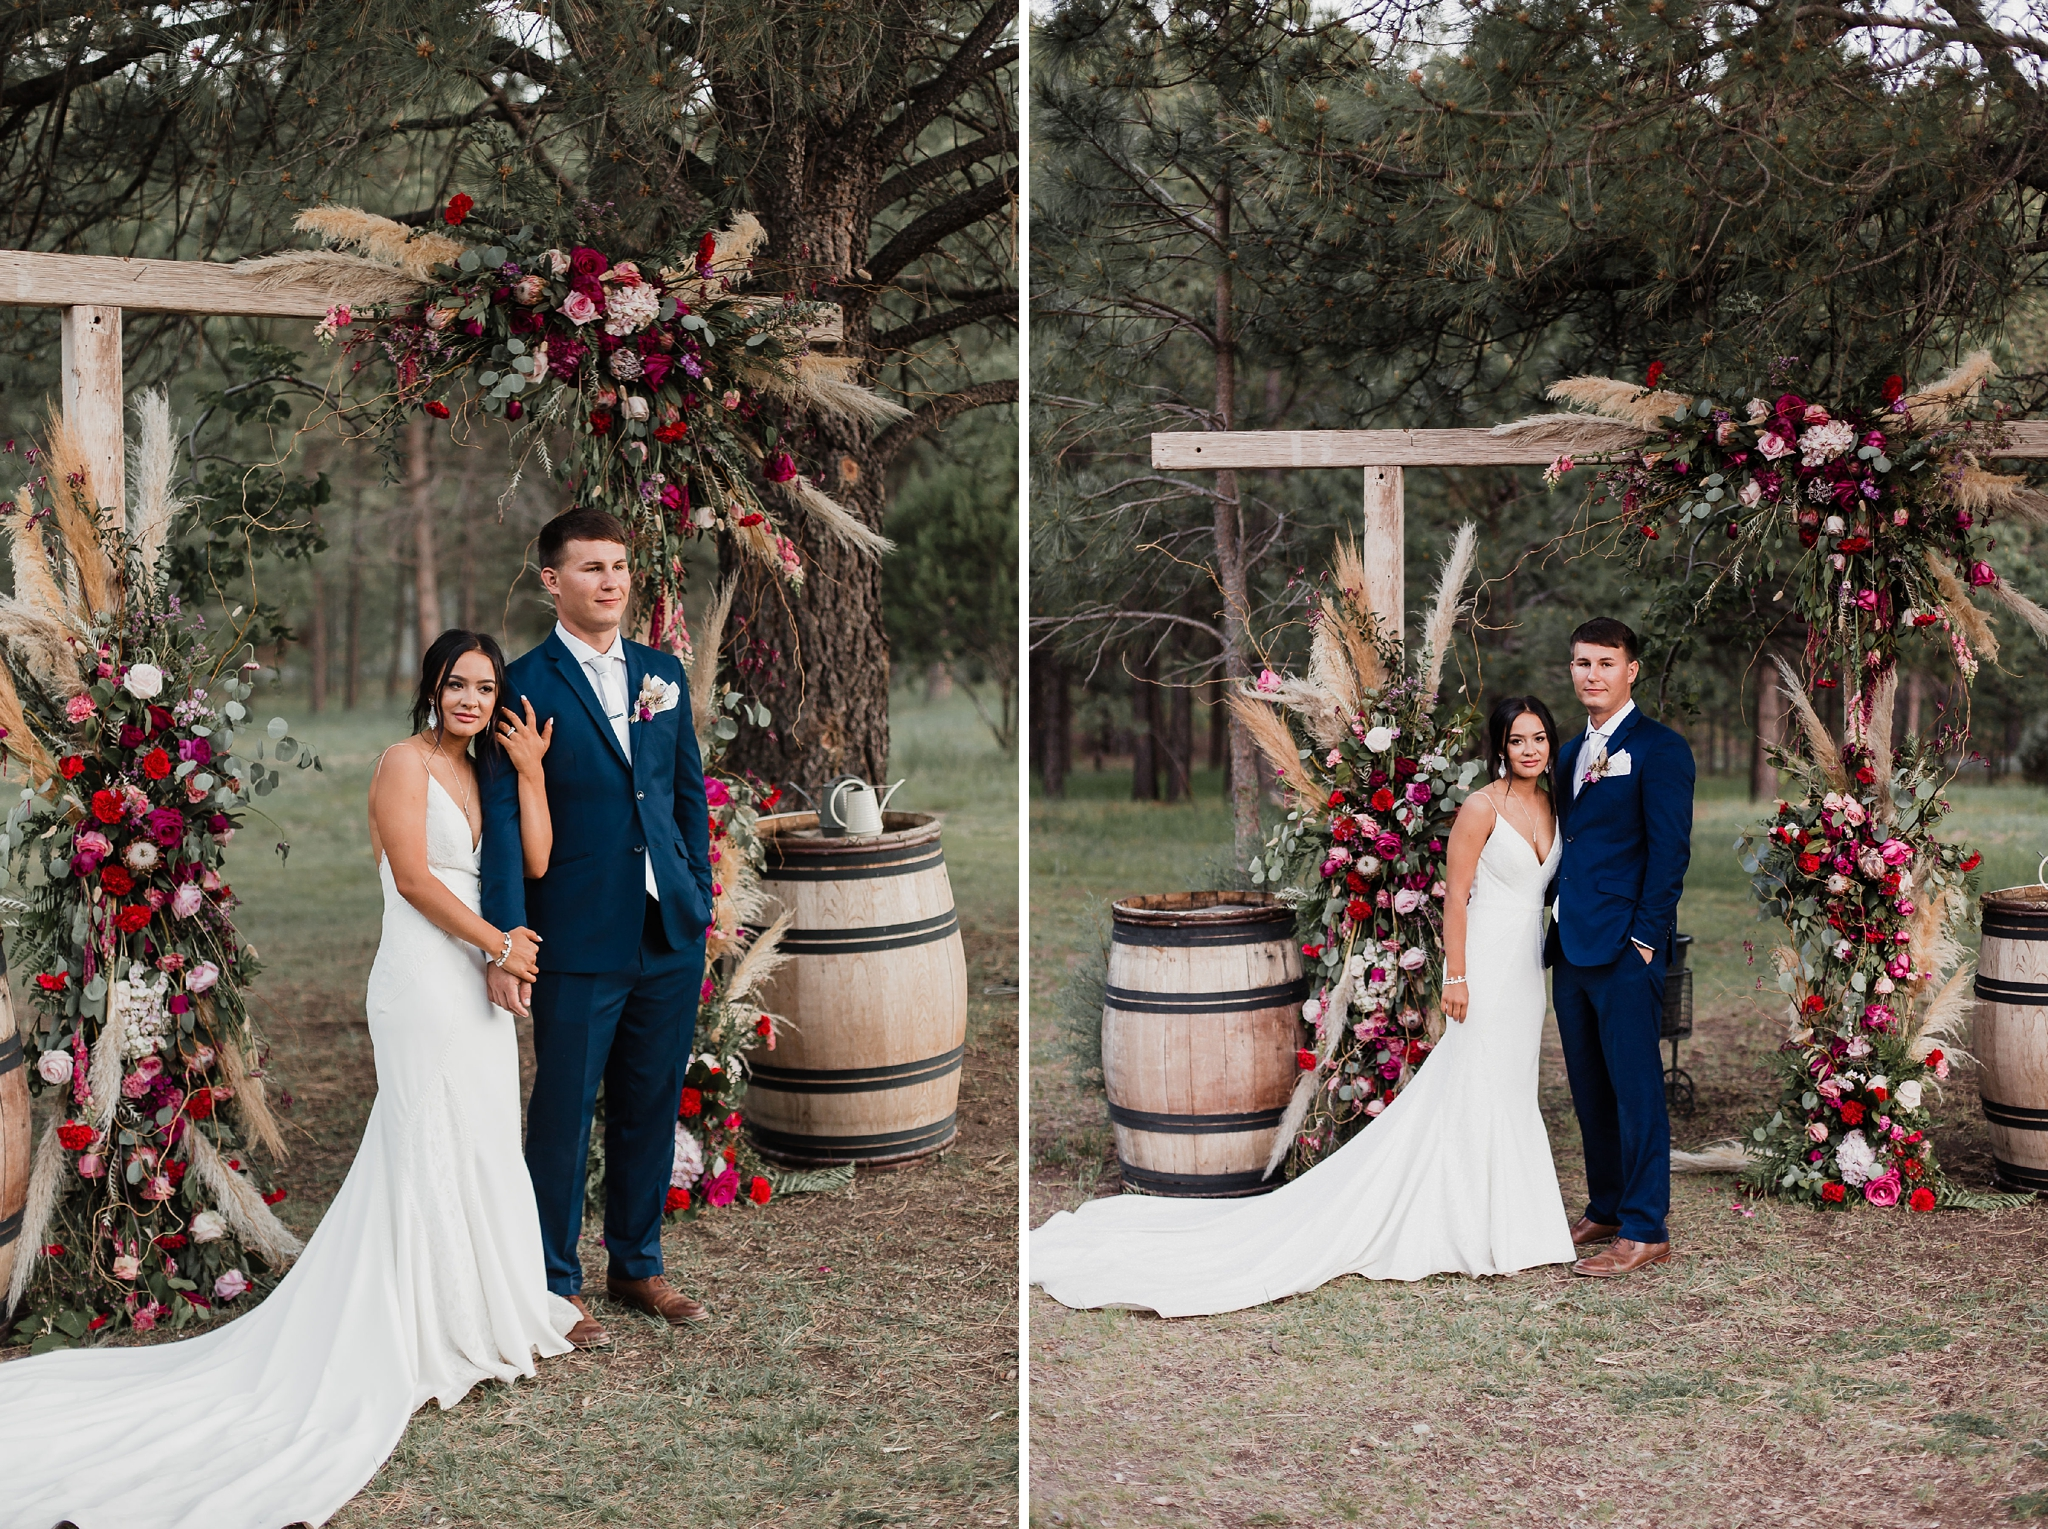 Alicia+lucia+photography+-+albuquerque+wedding+photographer+-+santa+fe+wedding+photography+-+new+mexico+wedding+photographer+-+new+mexico+wedding+-+summer+wedding+-+summer+wedding+florals+-+southwest+wedding_0015.jpg